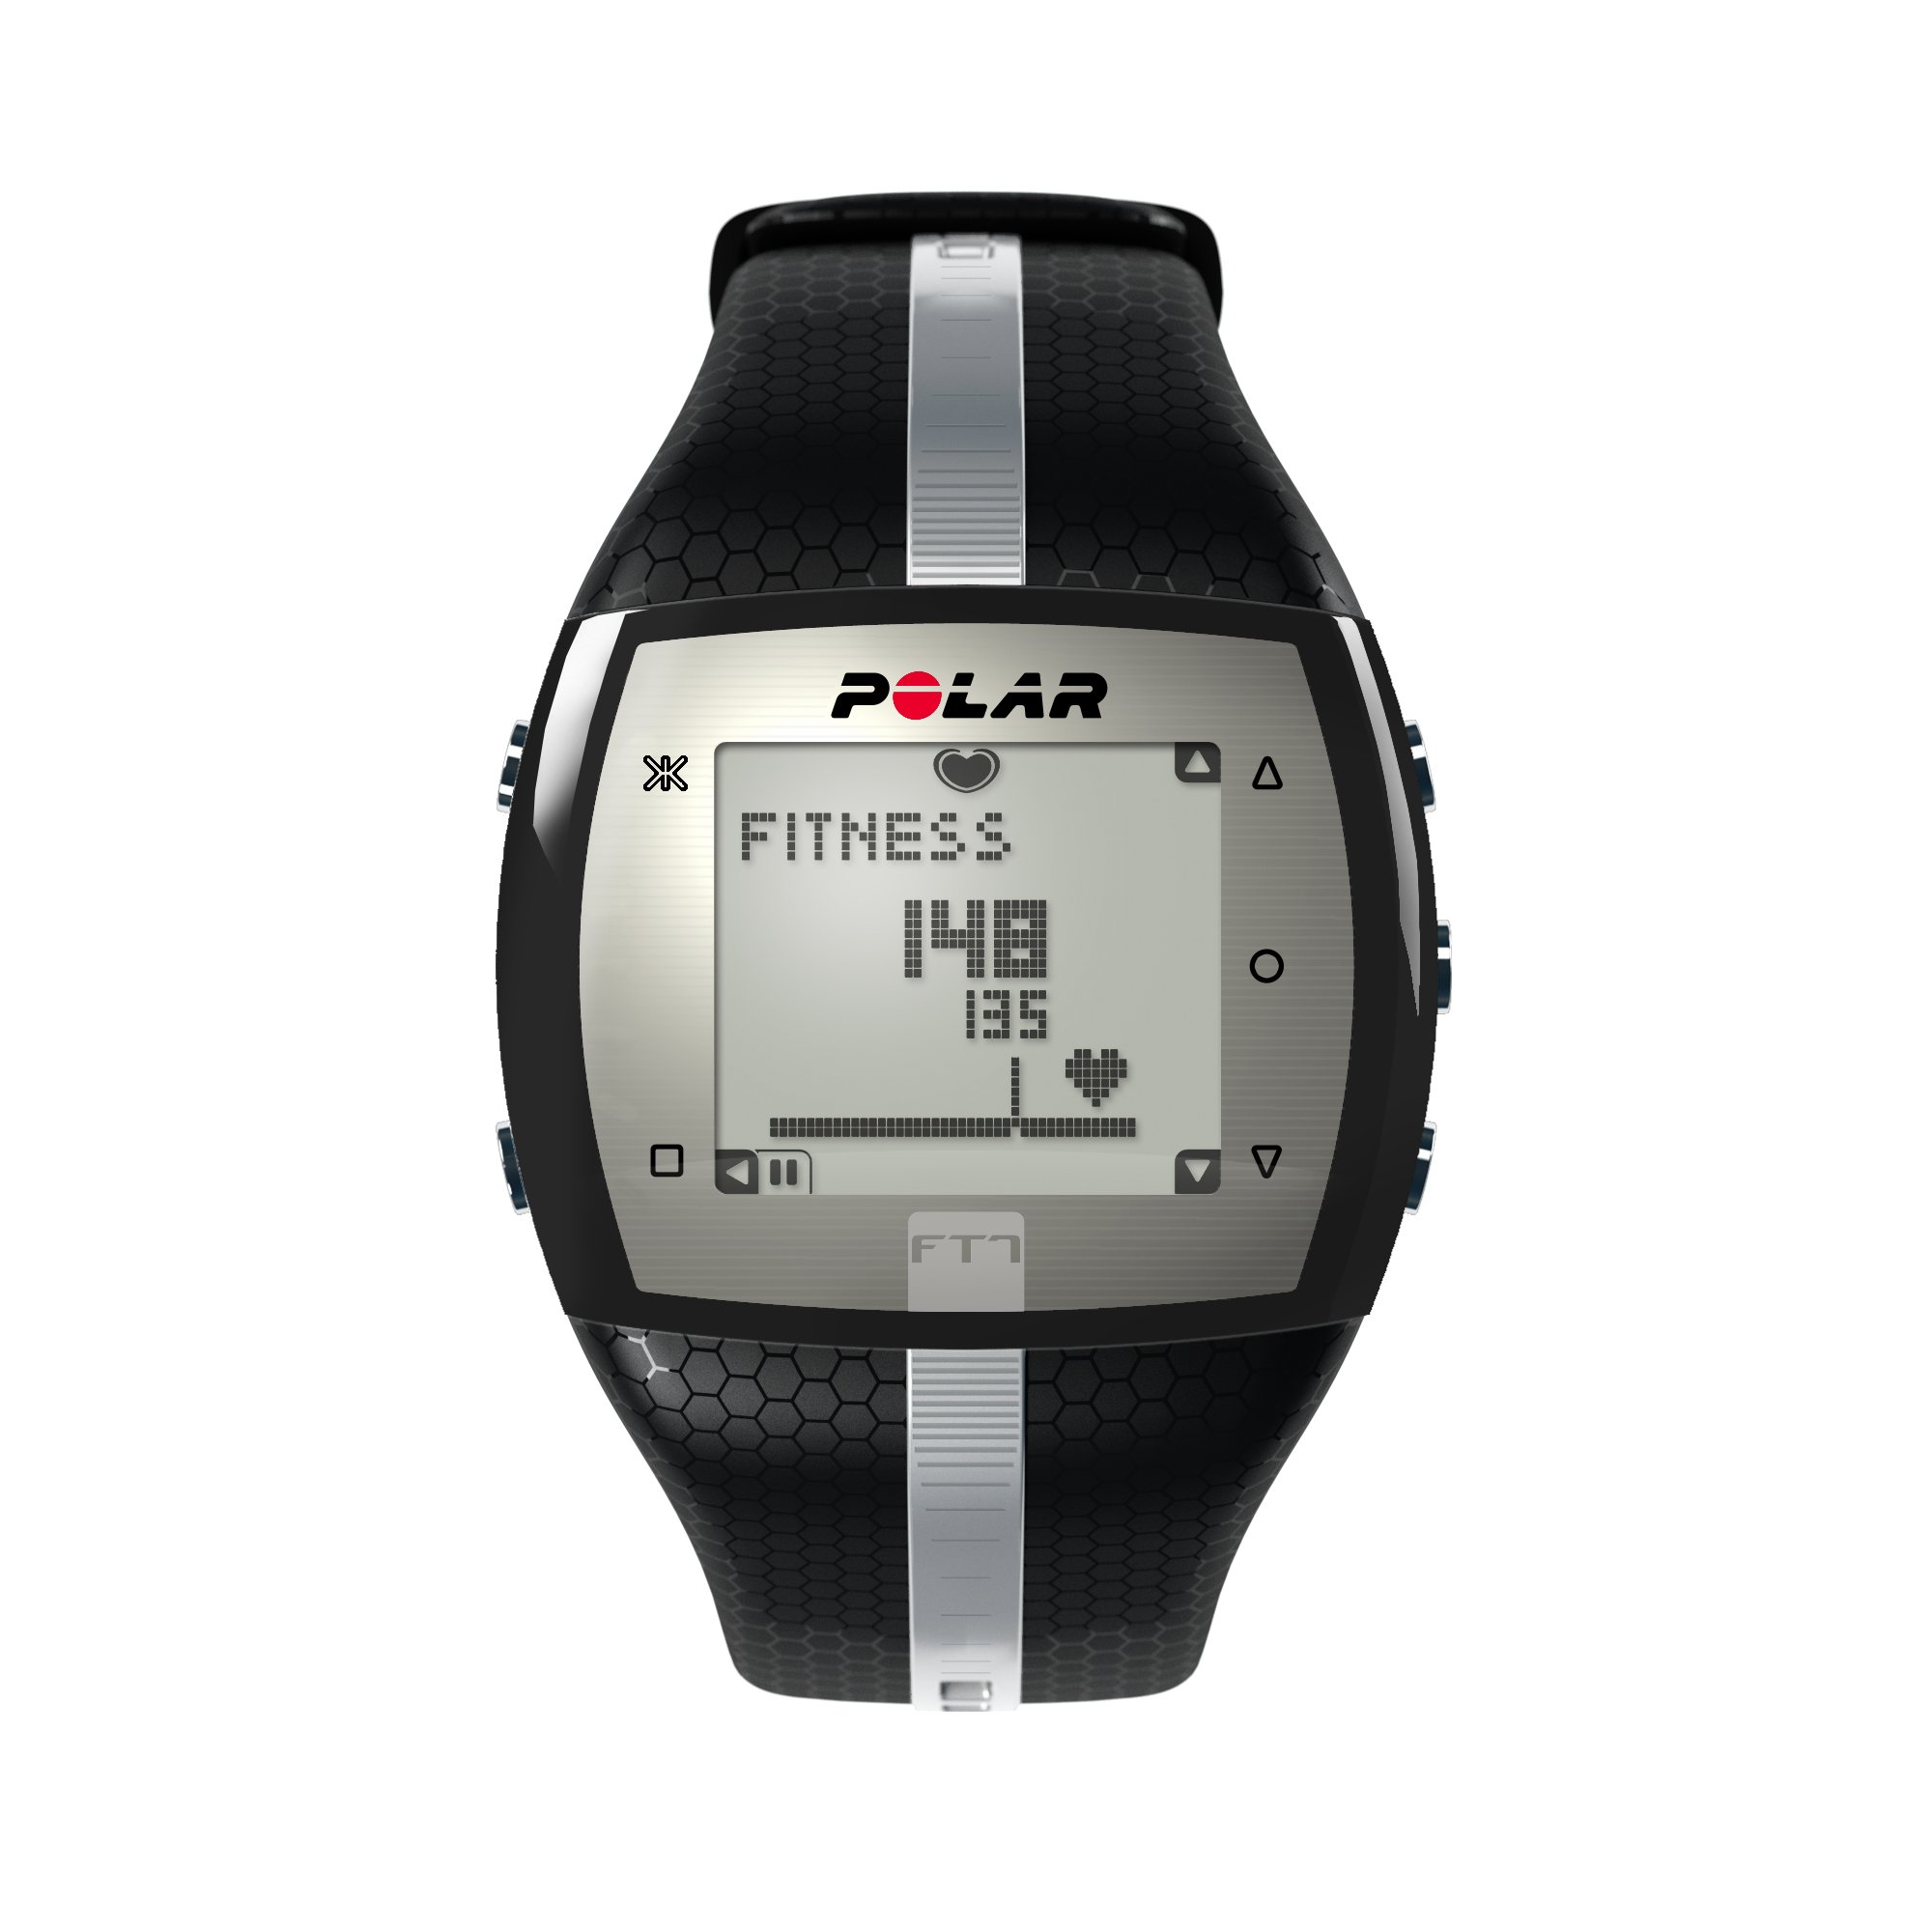 Polar FT7 Heart Rate Monitor, Black/Silver